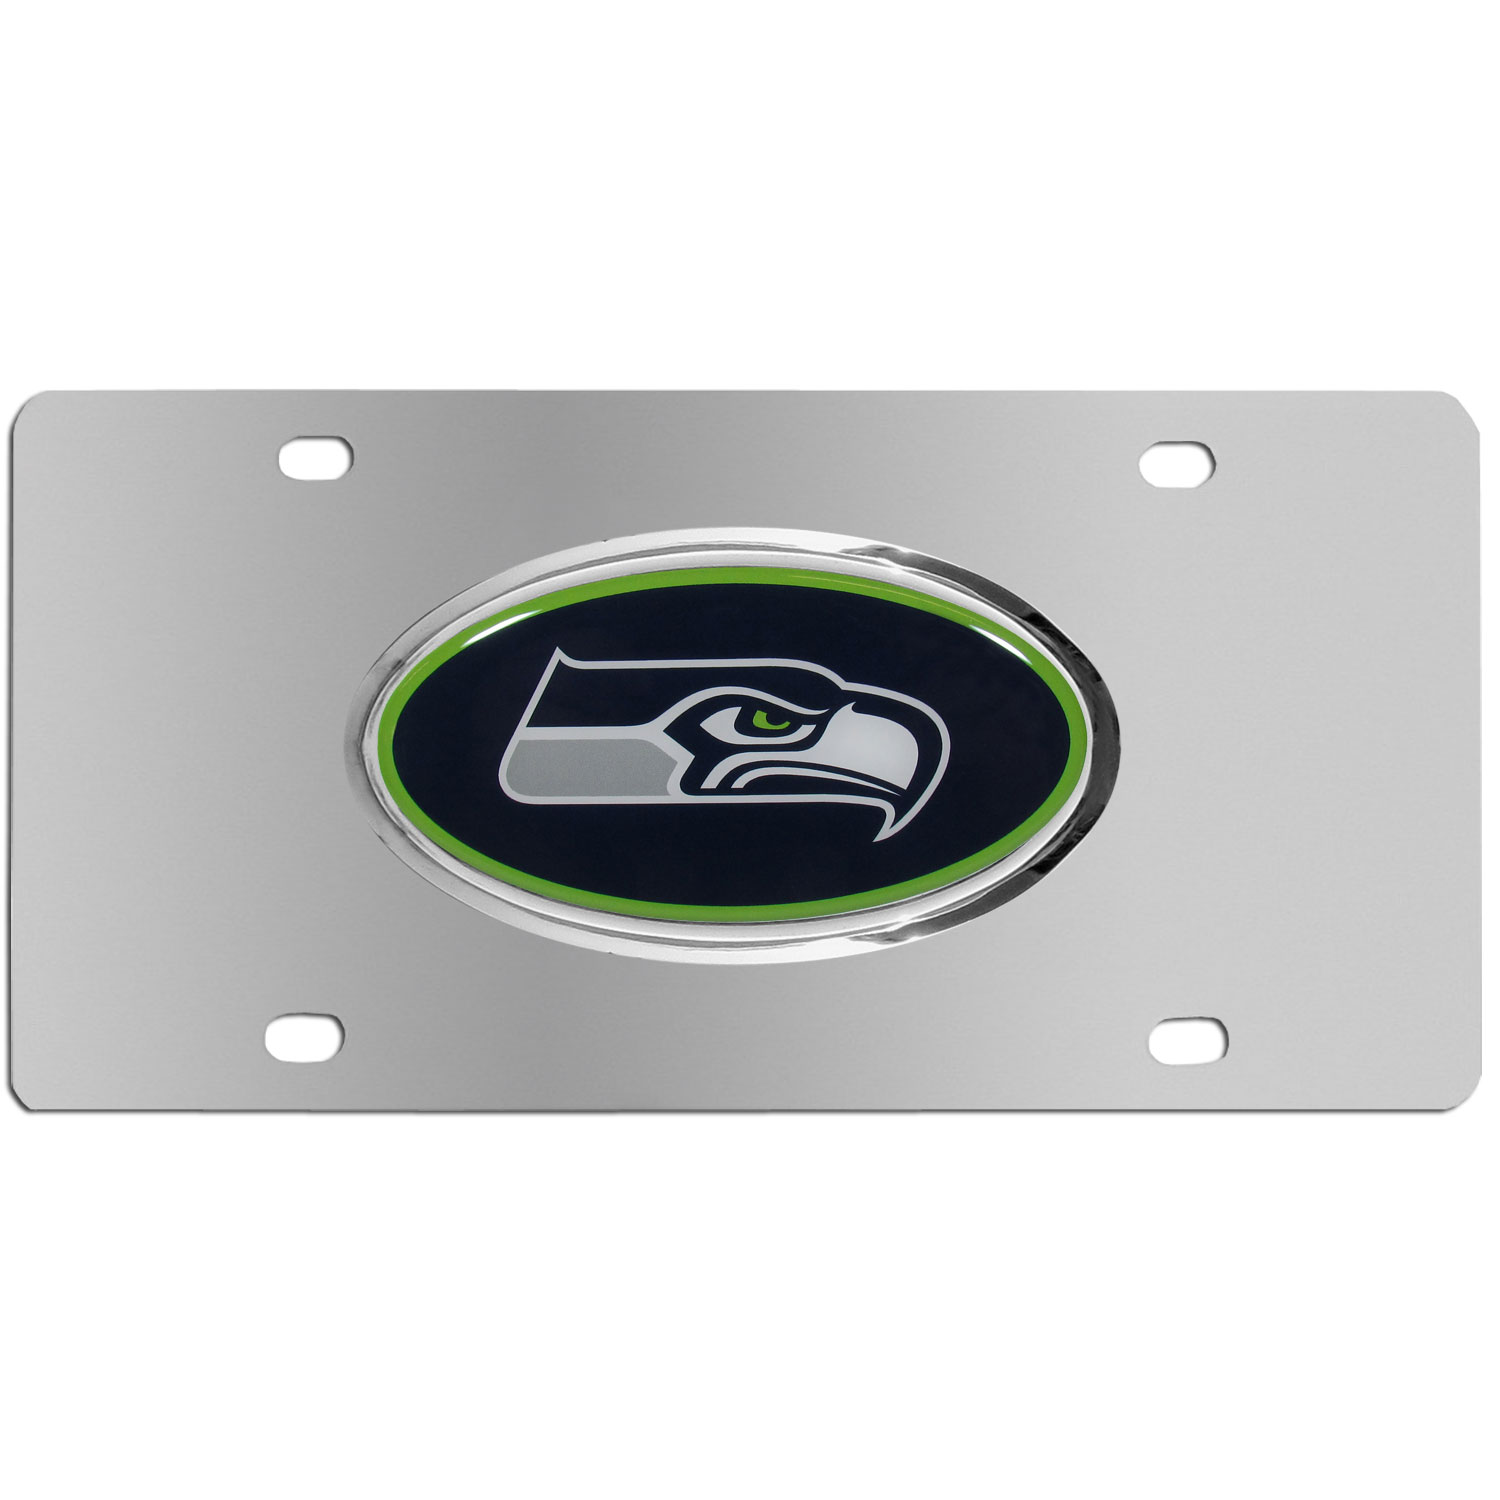 Seattle Seahawks Steel Plate - Accessorize your vehicle or game room with this unique NFL steel plate featuring your team's logo on a stainless steel plate.